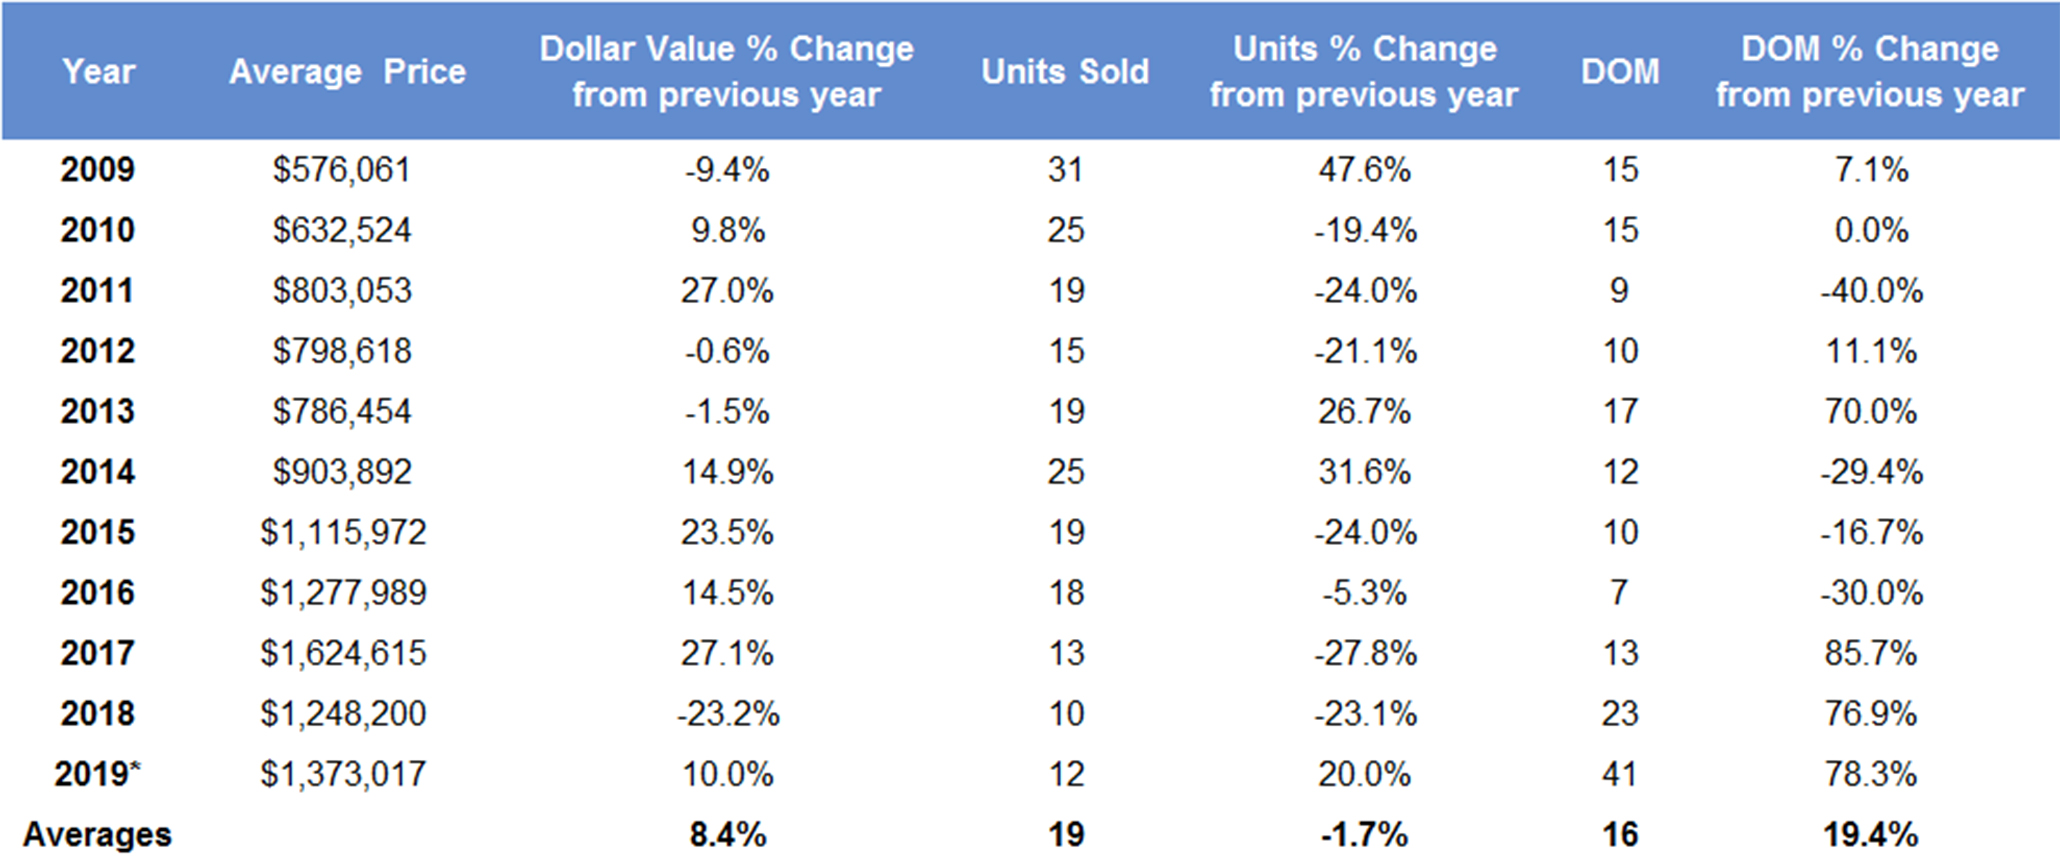 Leaside & Bennington Heights Bungalow Home Sales Statistics 2019 from Jethro Seymour, Top midtown Toronto Realtor